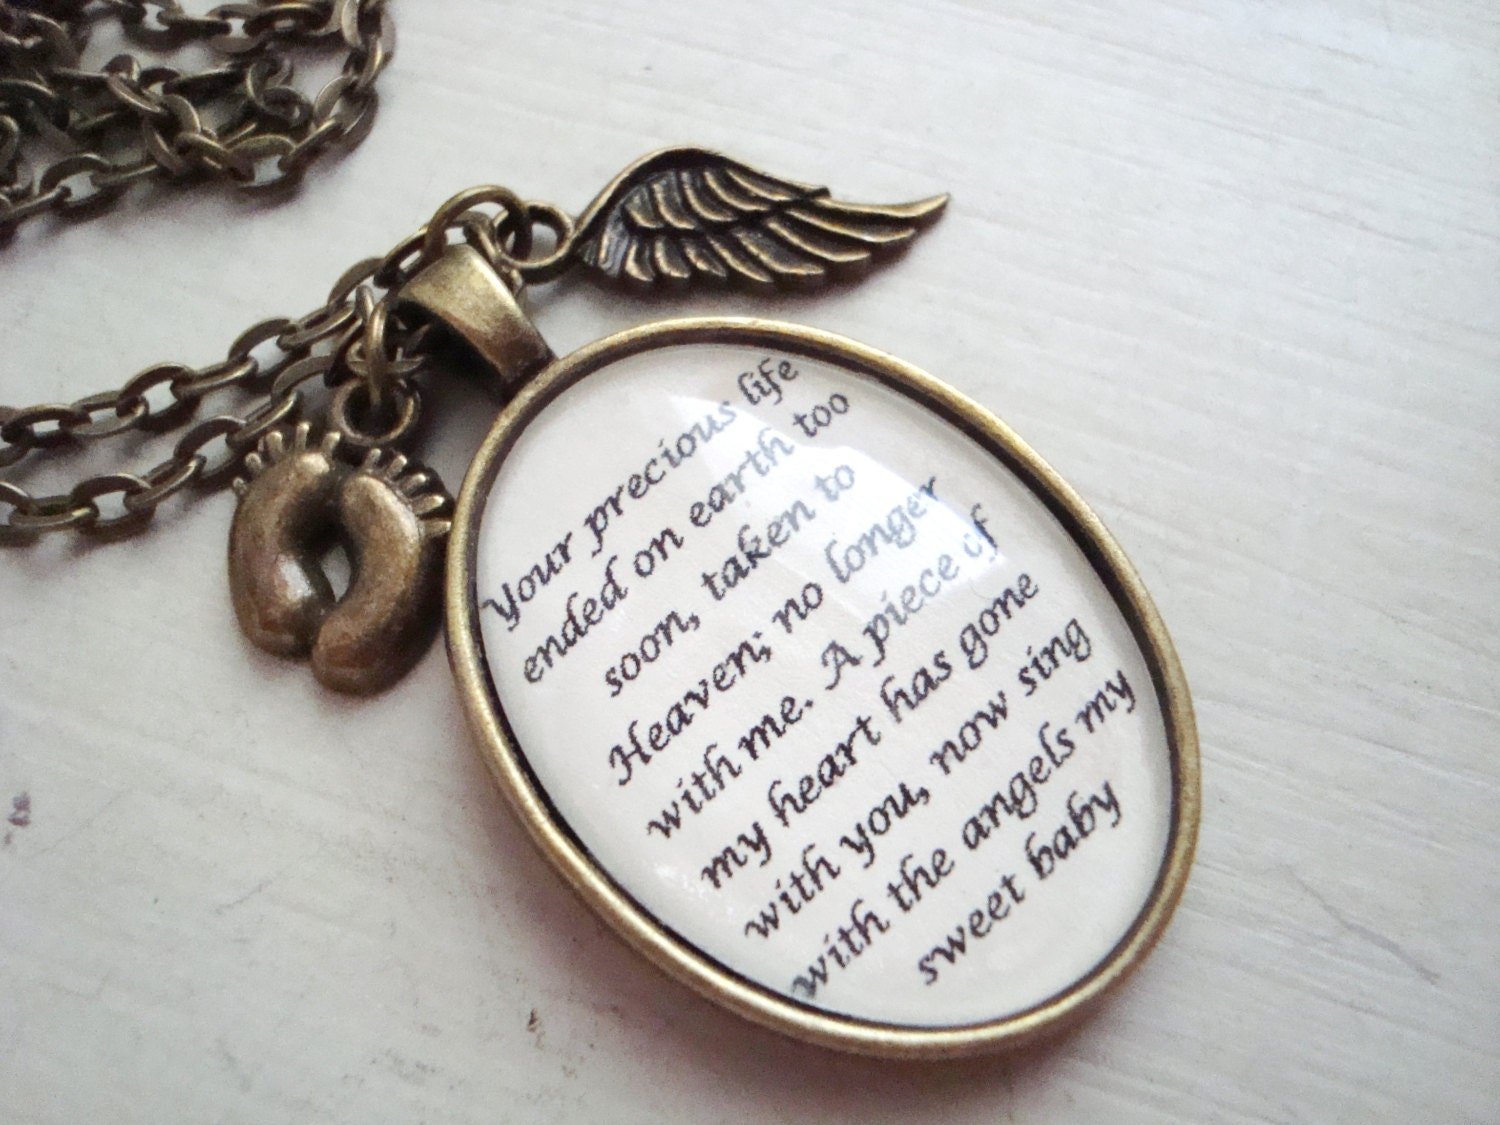 filled angel cydesignstudio nec gift wing her for fullxfull il personalized miscarriage loss necklace gold products memorial